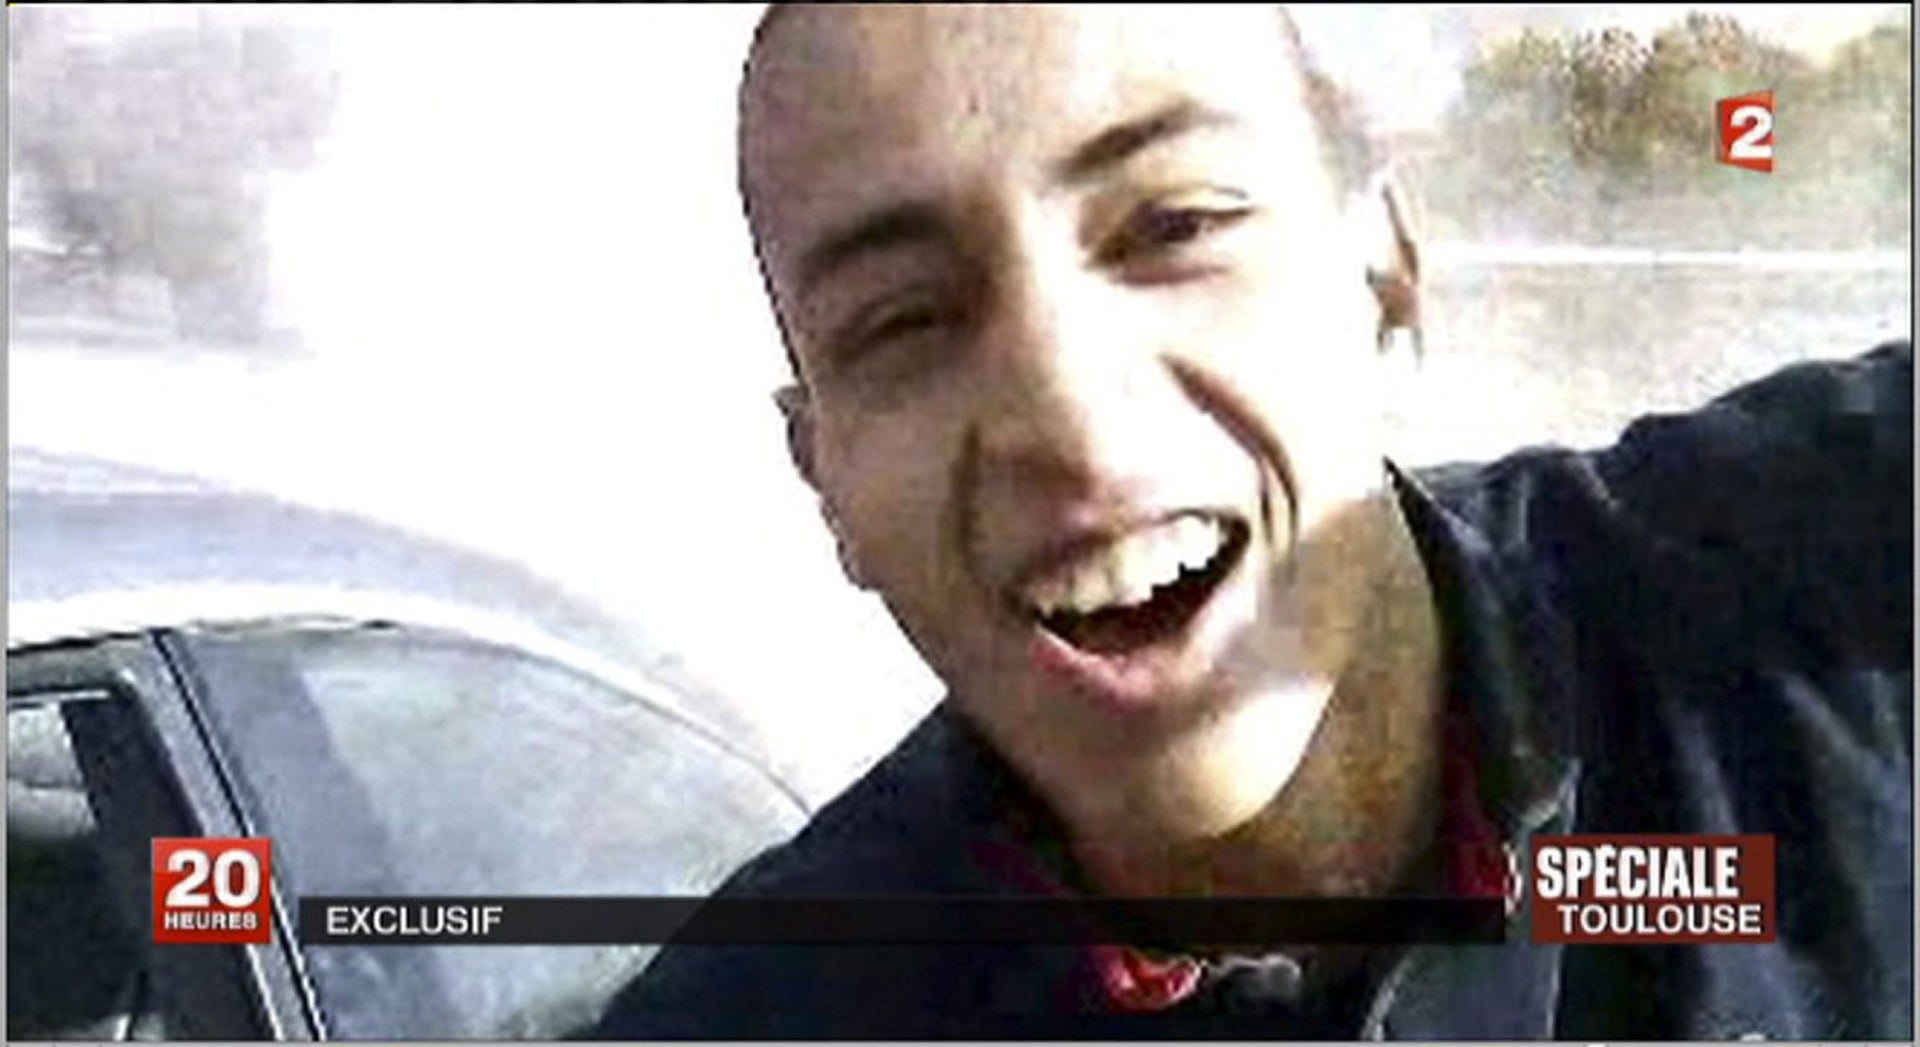 Mohamed Merah, the gunman who killed a rabbi and three children at a Jewish school in Toulouse, as well as three soldiers, in 2012.